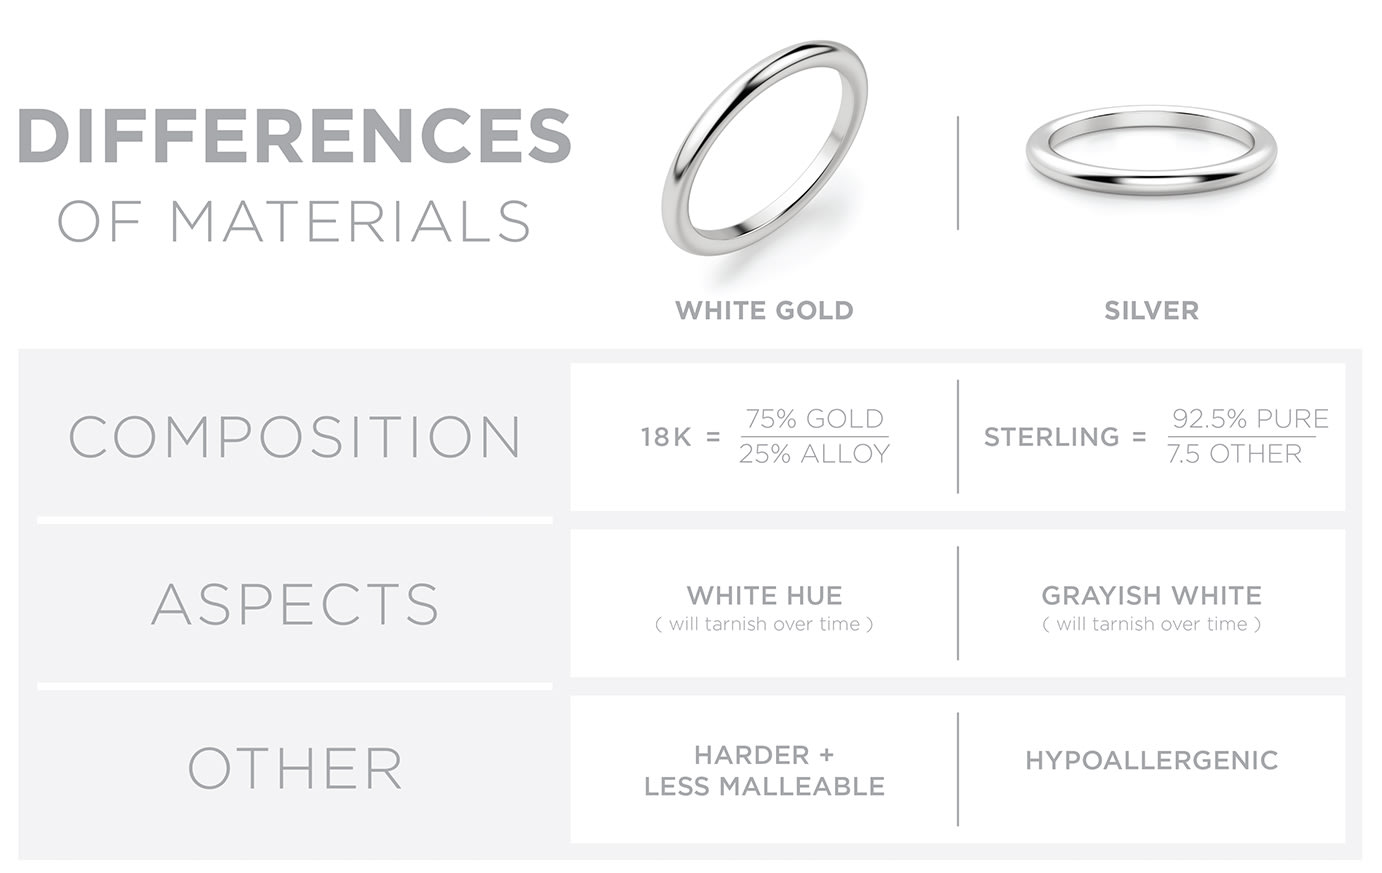 Differences of white gold and silver